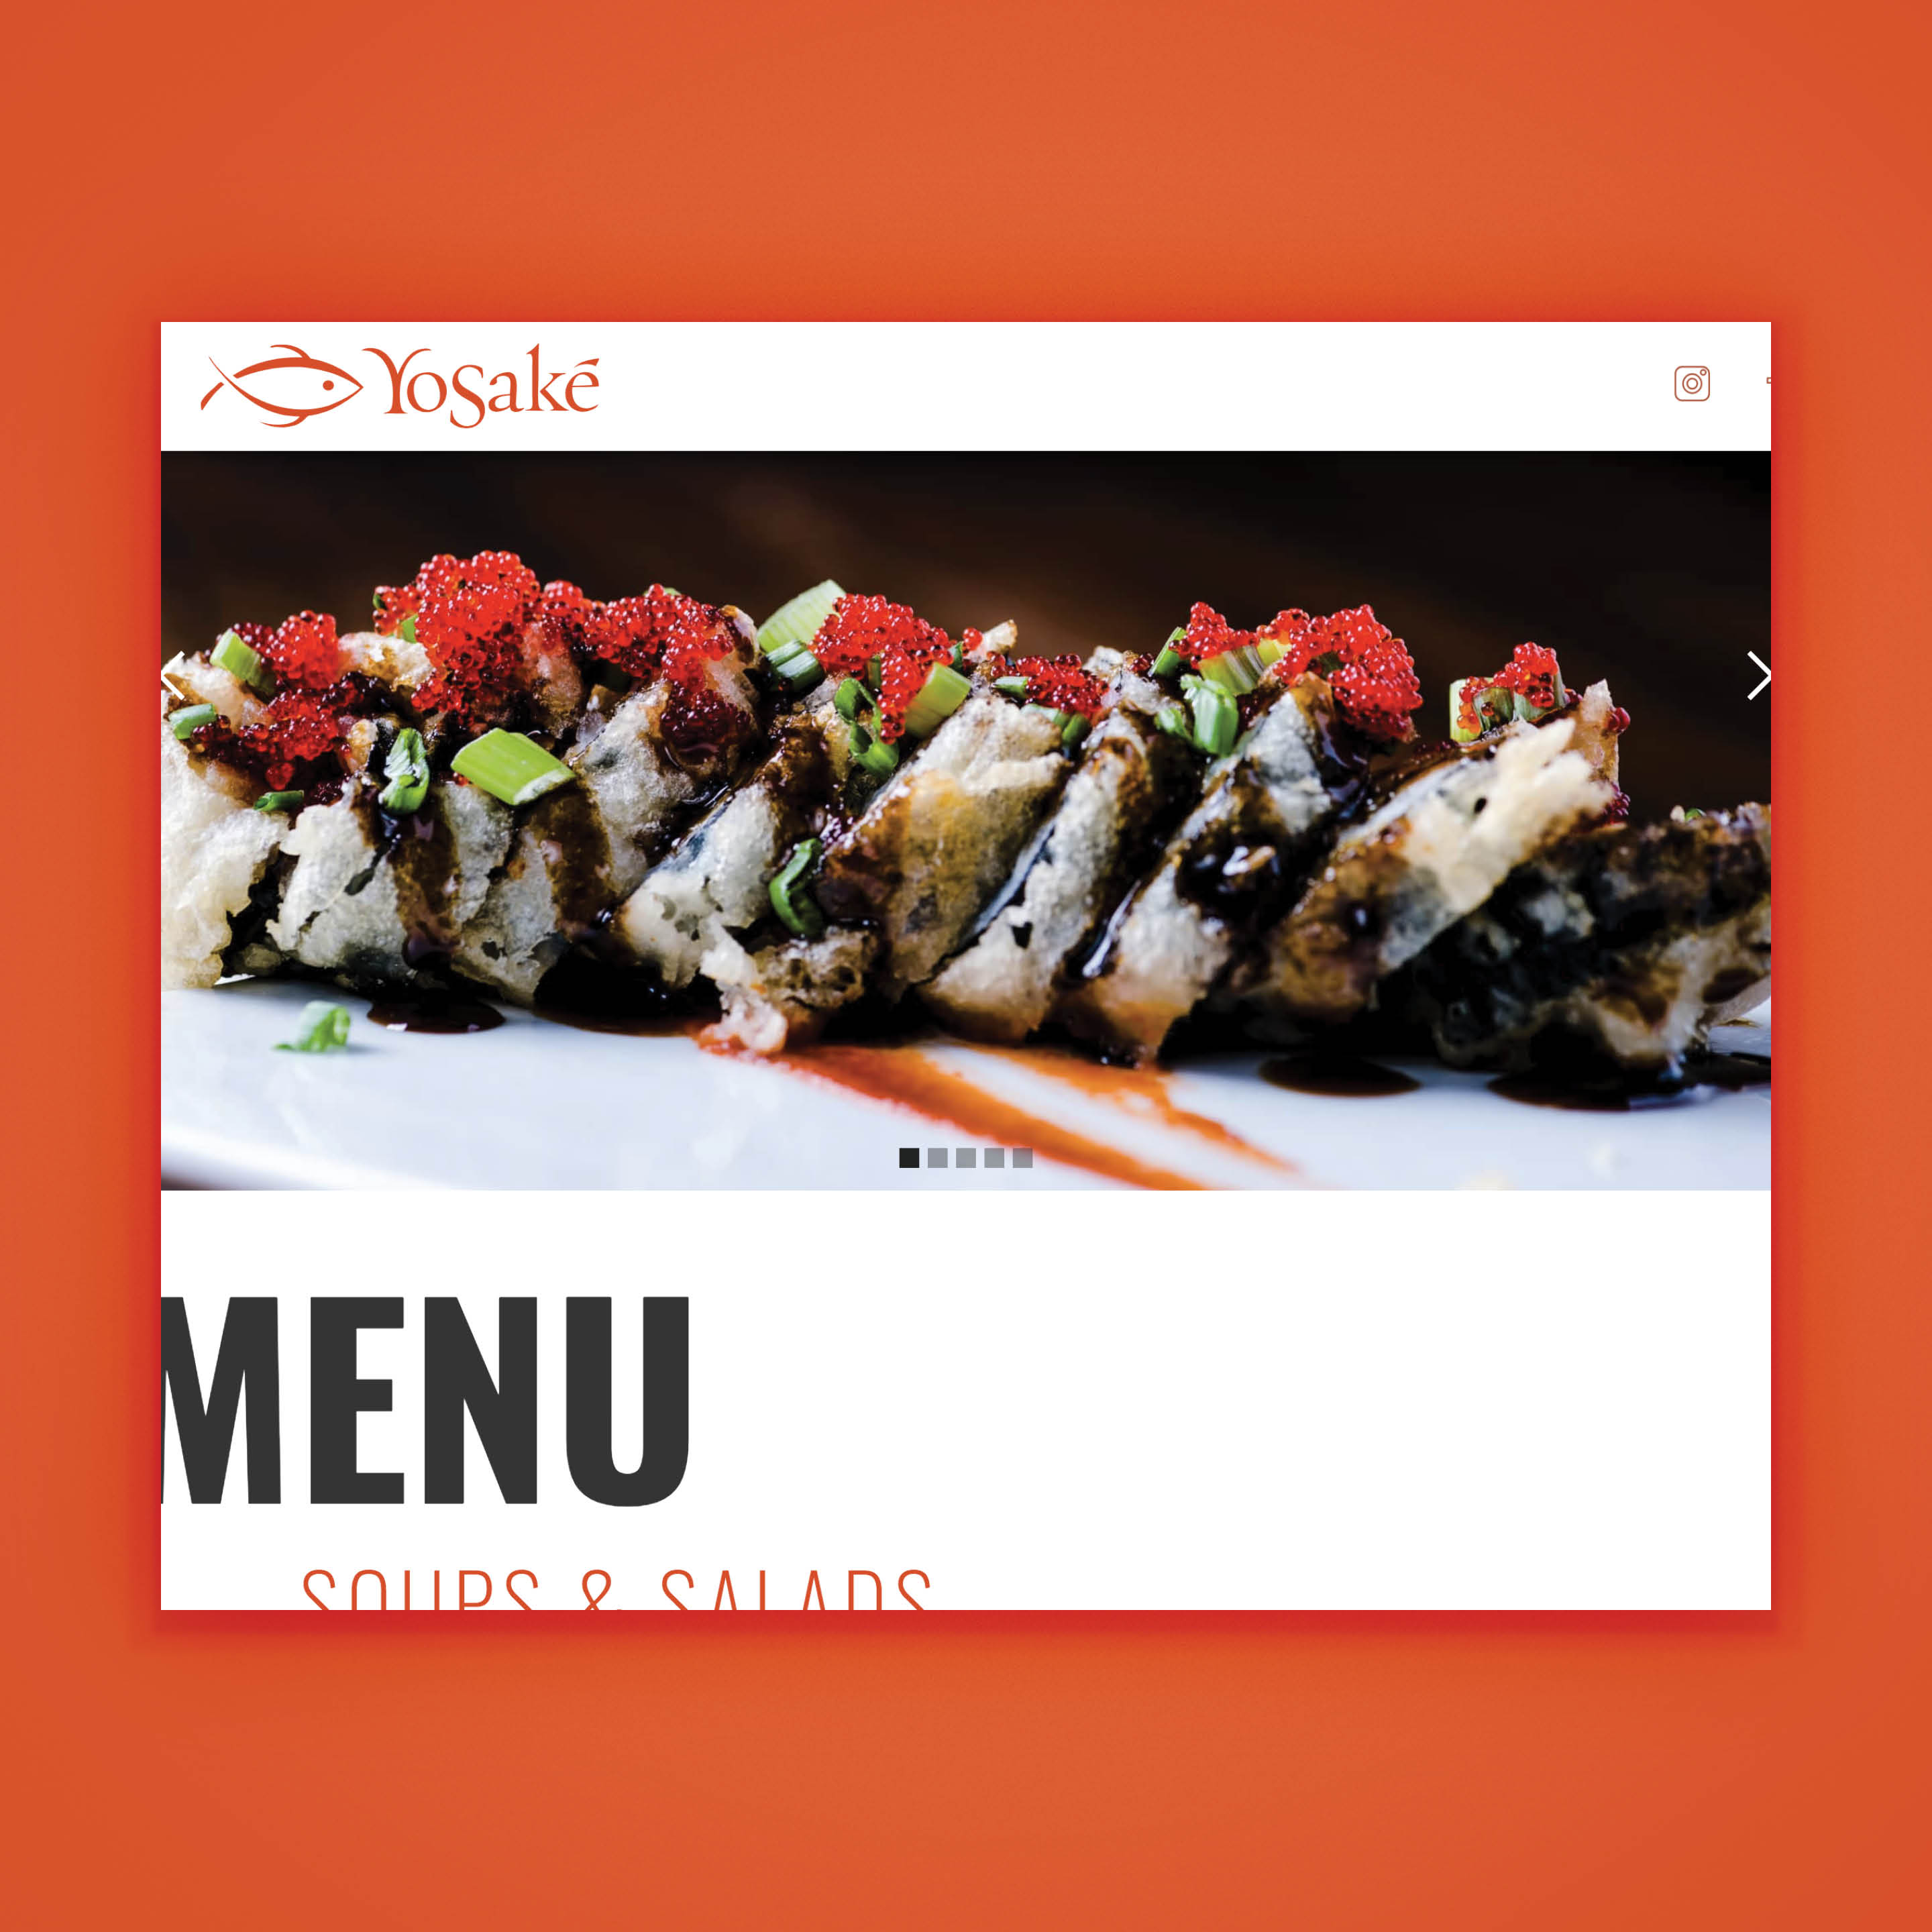 Yosake restaurant - website desgin by Brand Engine